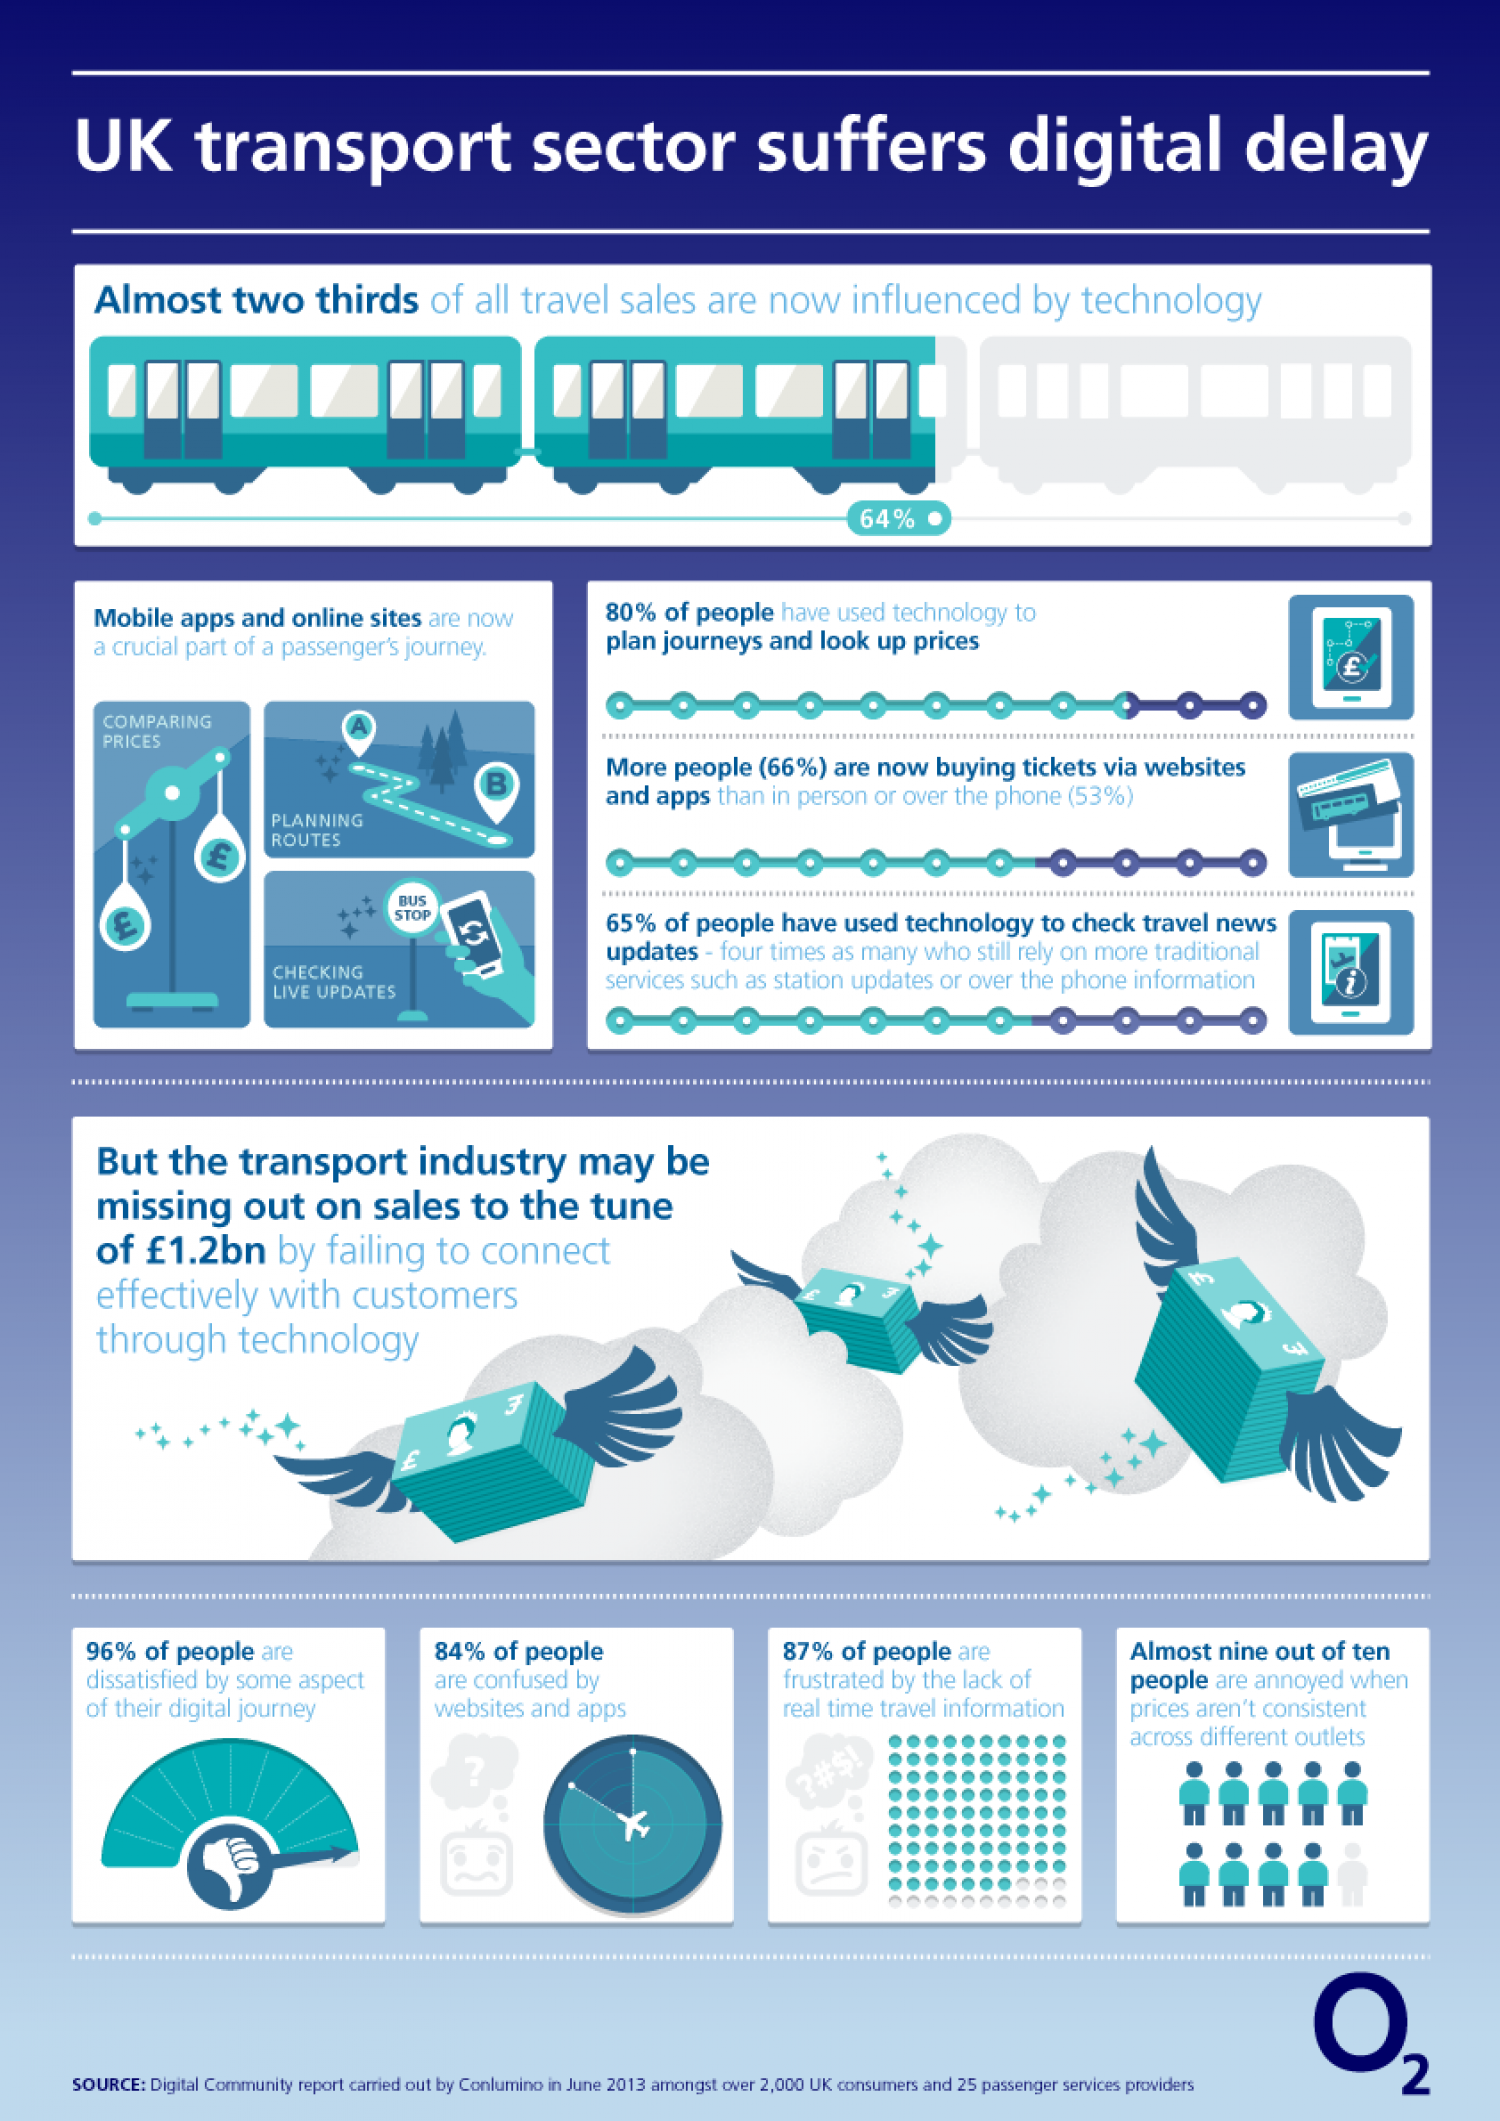 UK Transport Sector Suffers Digital Delay Infographic